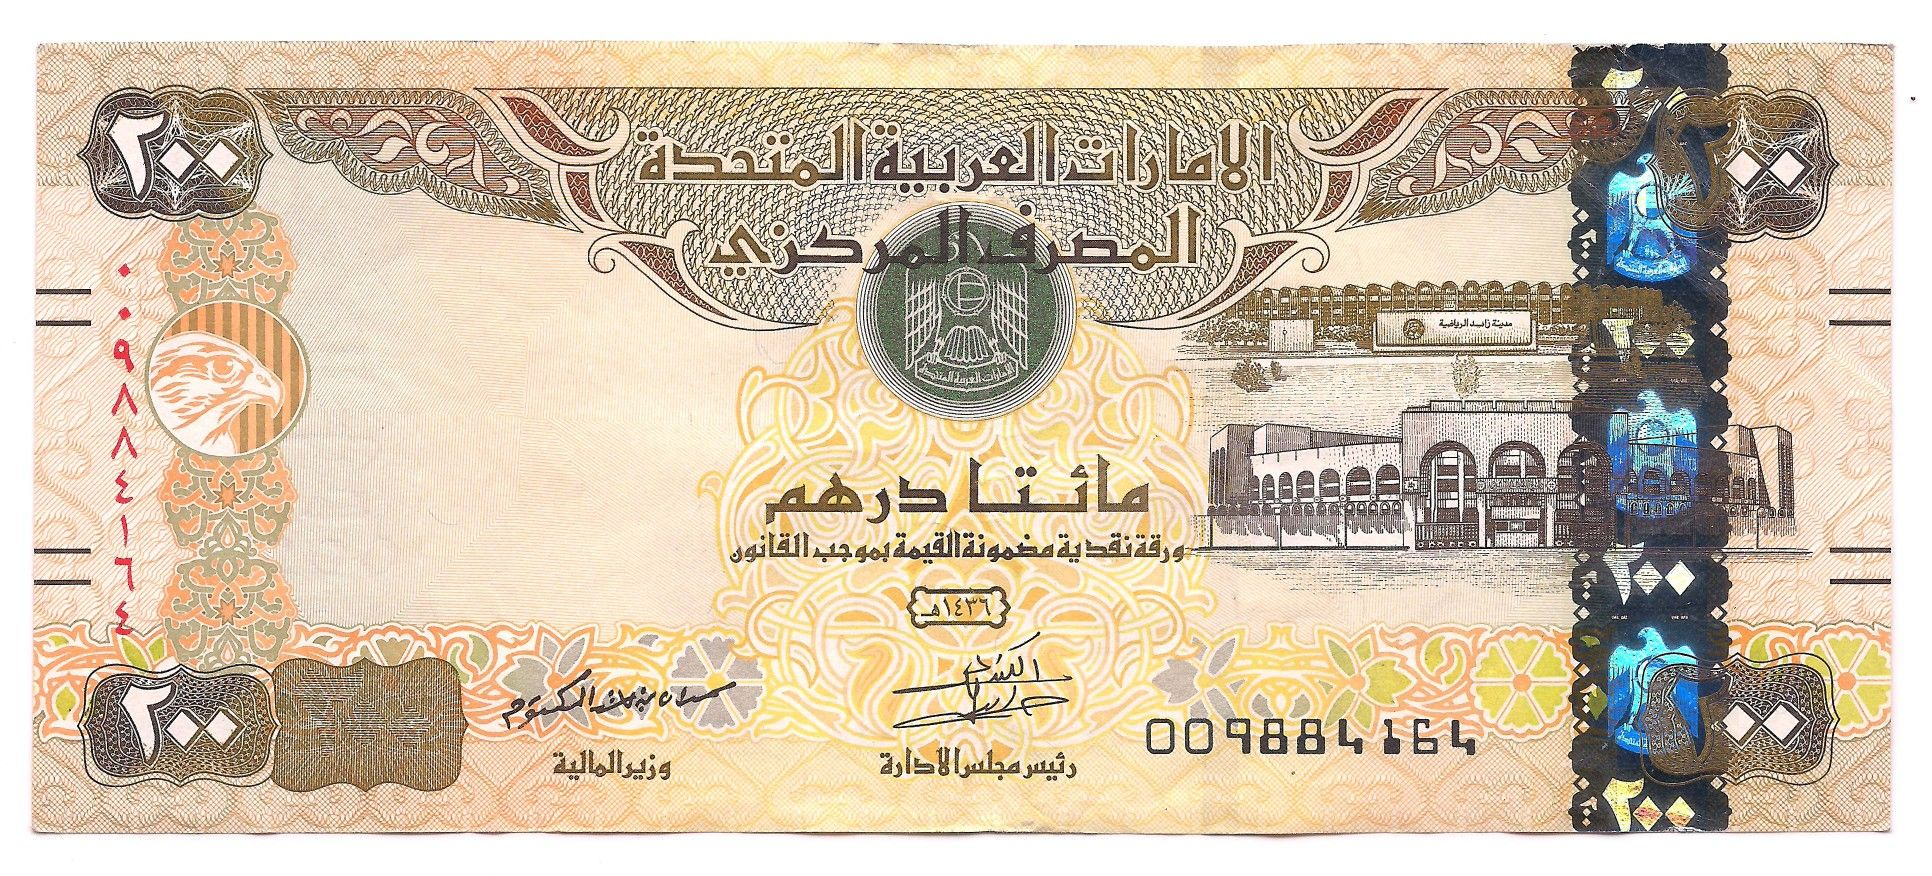 Uae Banknote 200 Front View